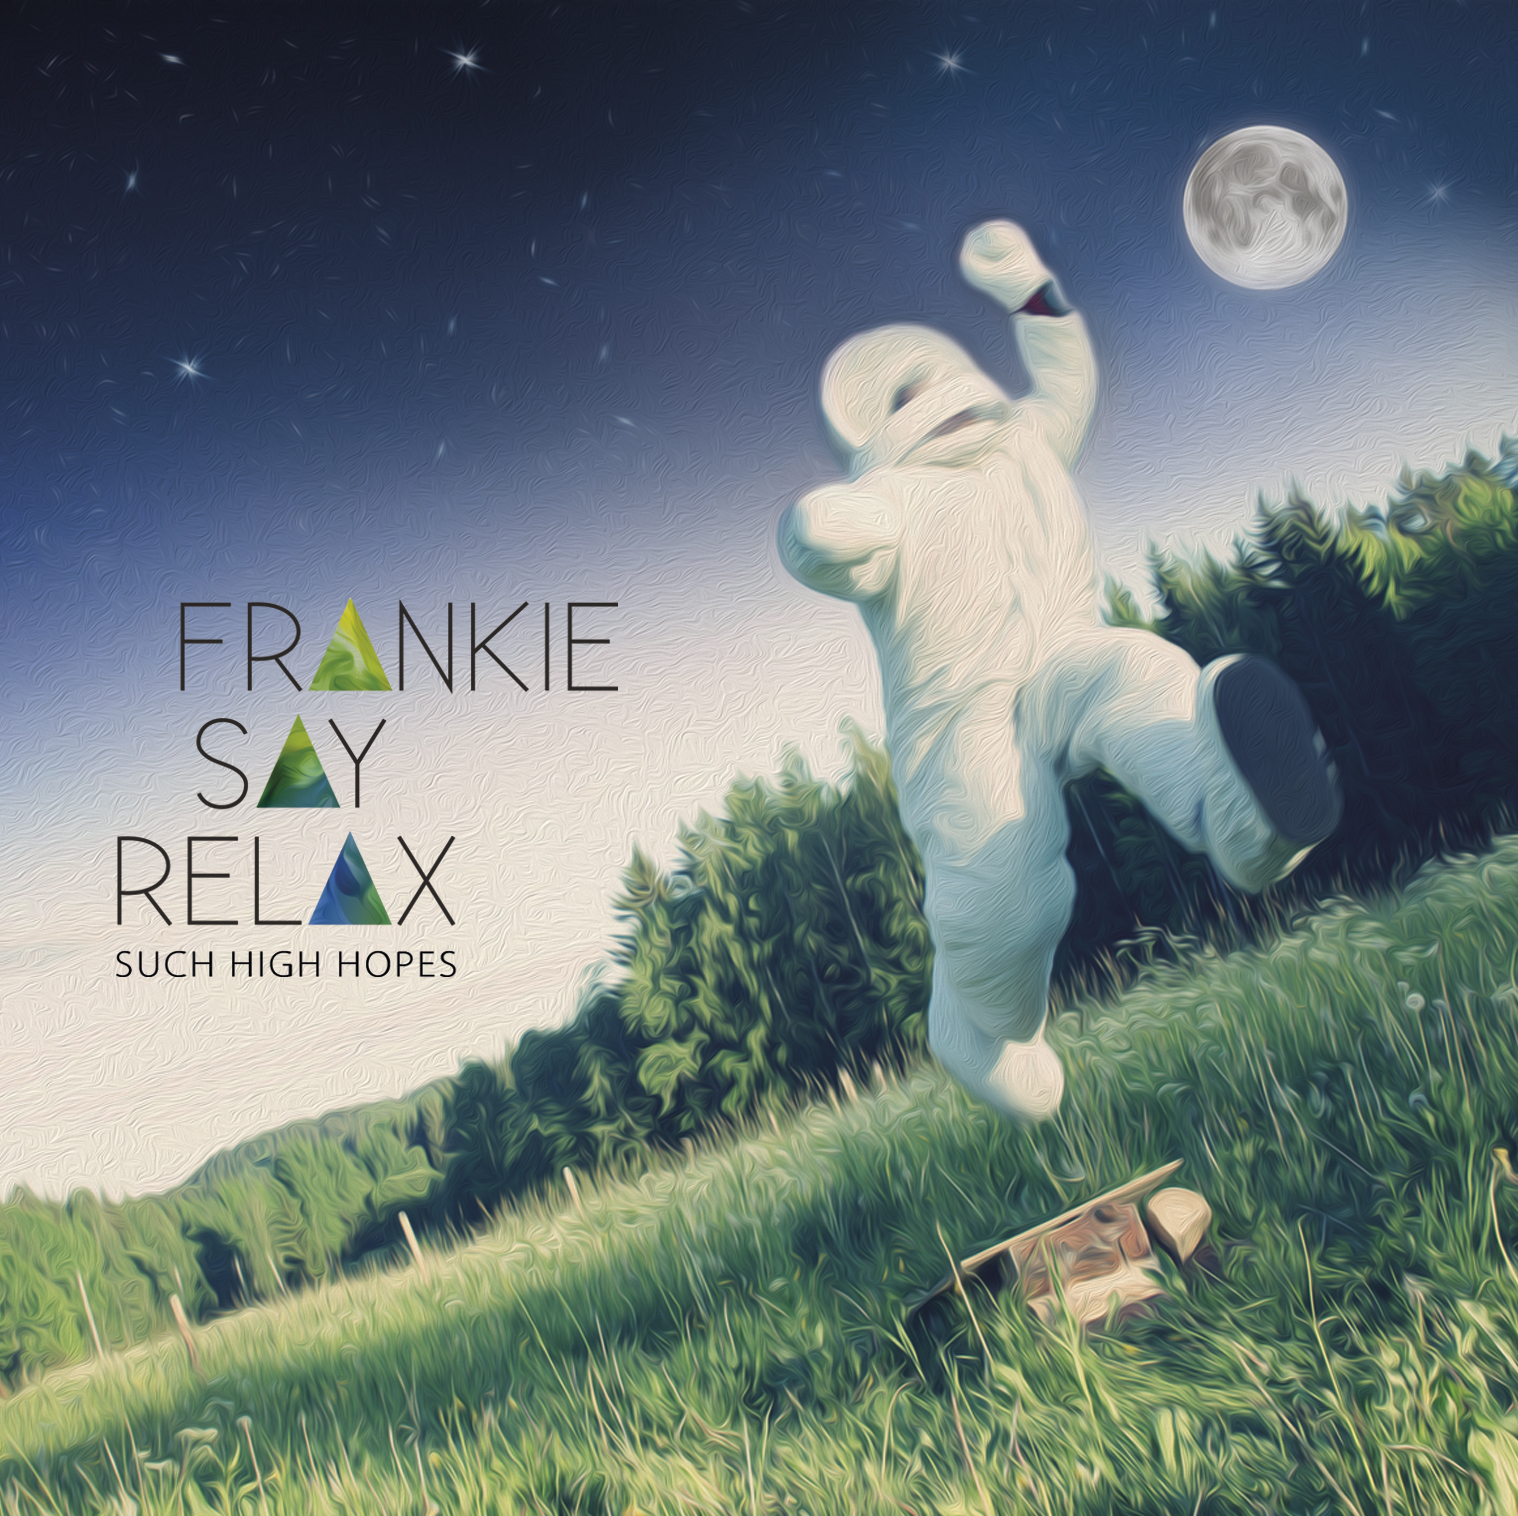 Frankie Say Relax: Such High Hopes